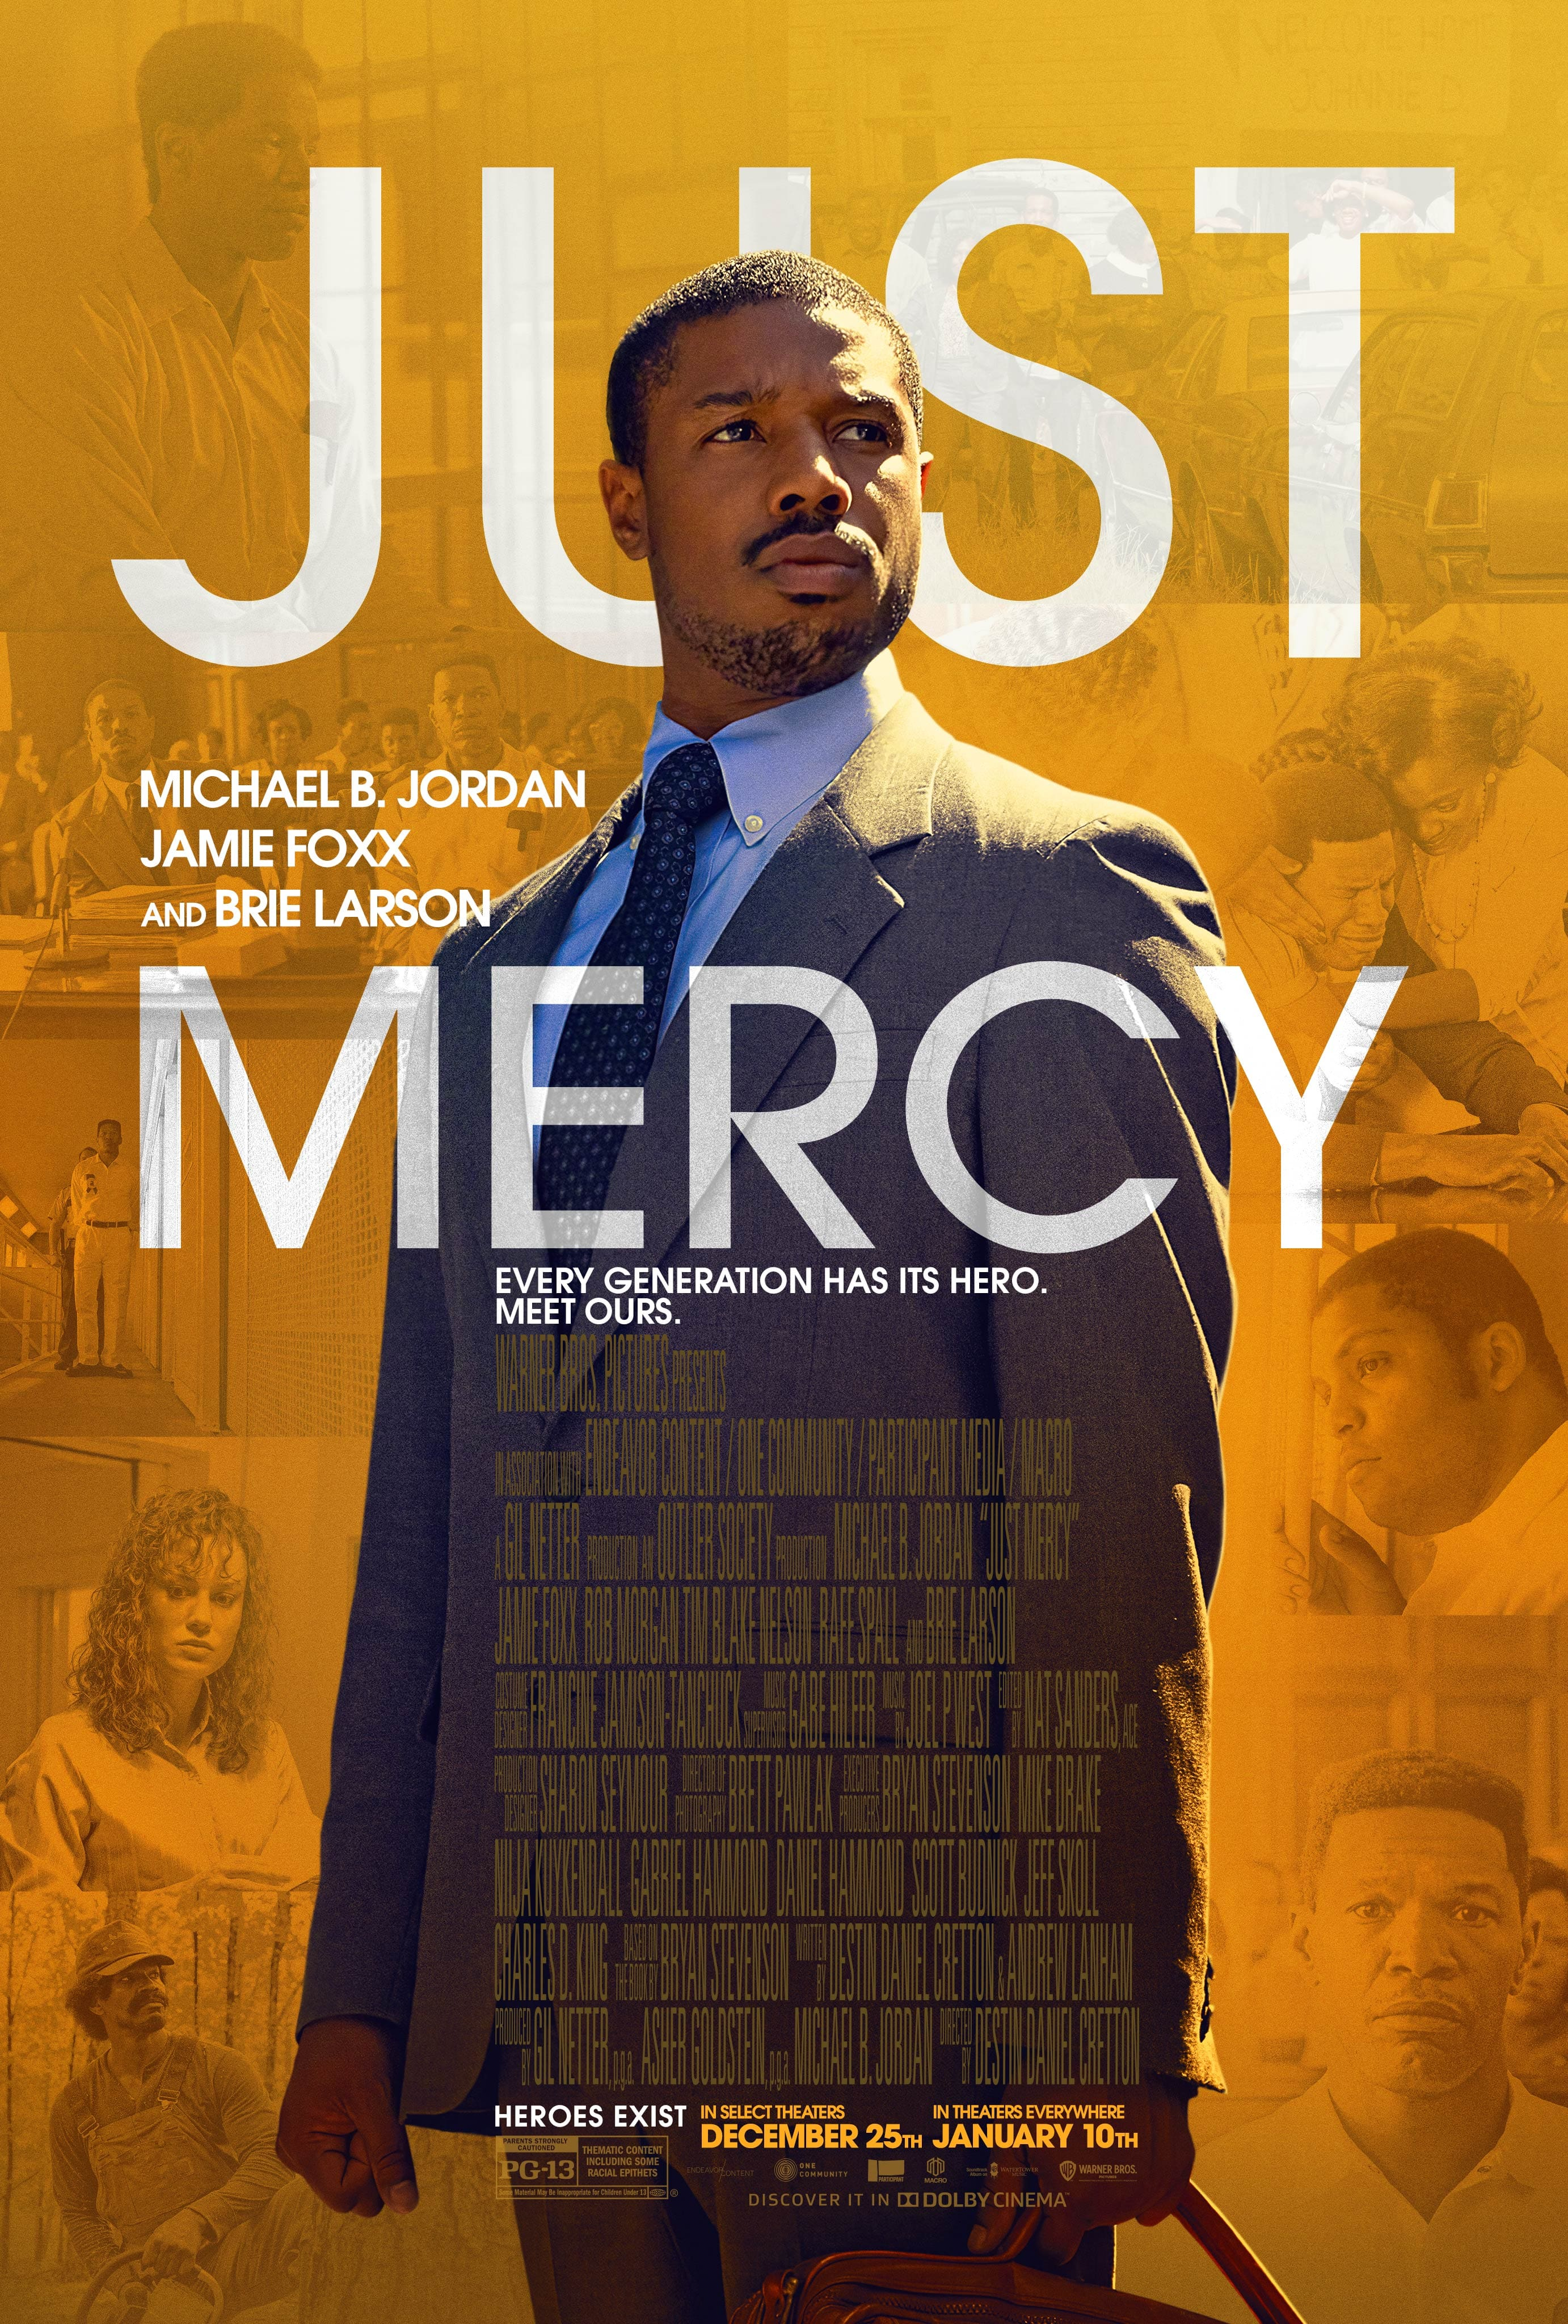 Atom Tickets - Just Mercy (Movie) - Buy One Get One Free